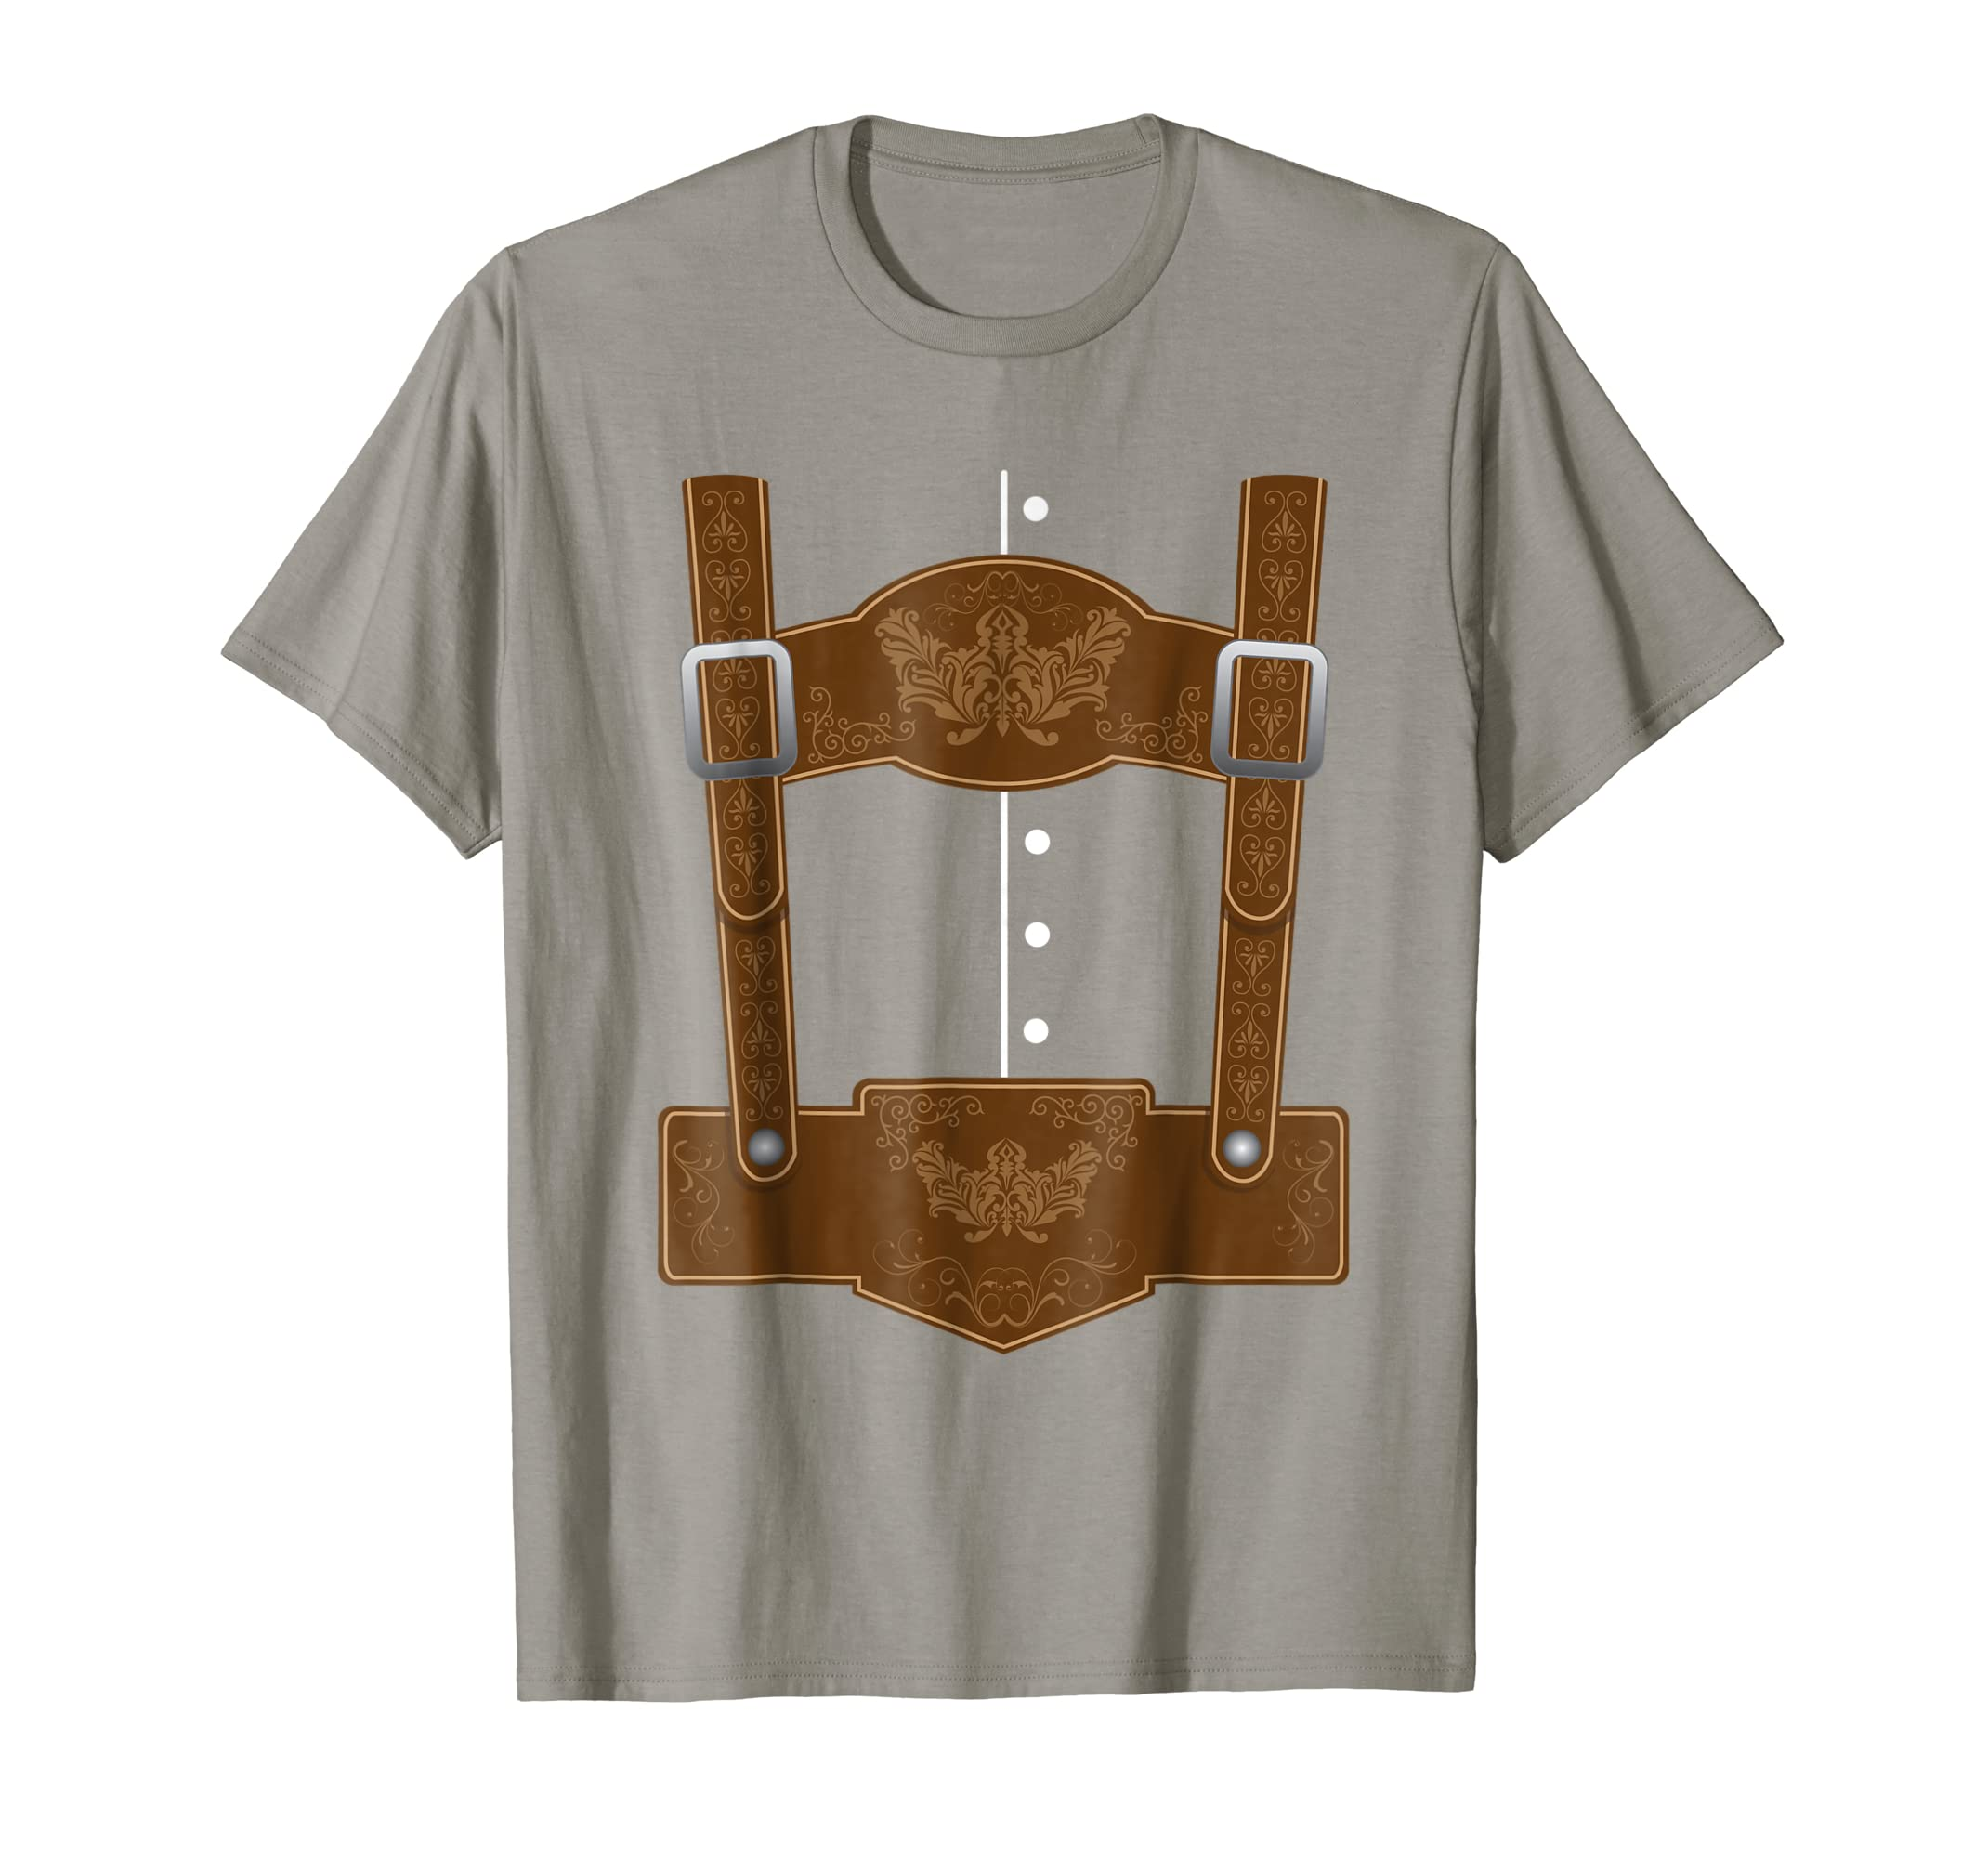 710f3ecc Amazon.com: Oktoberfest Lederhosen T-Shirt - Funny German Bavarian Shirt:  Clothing